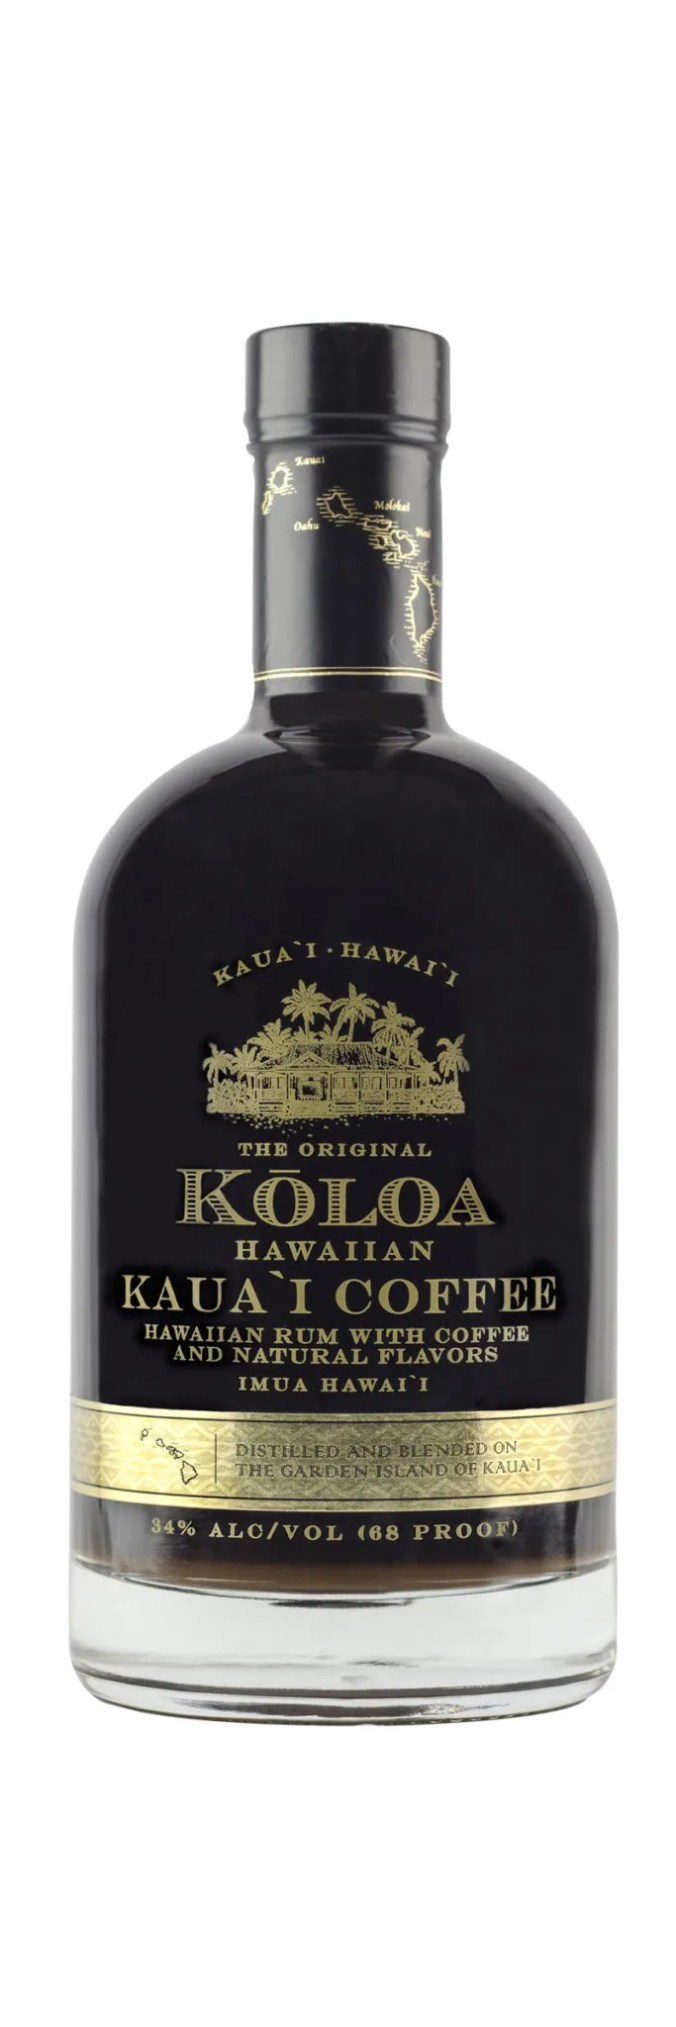 Koloa Hawaiian Kauai Coffee flavored rum